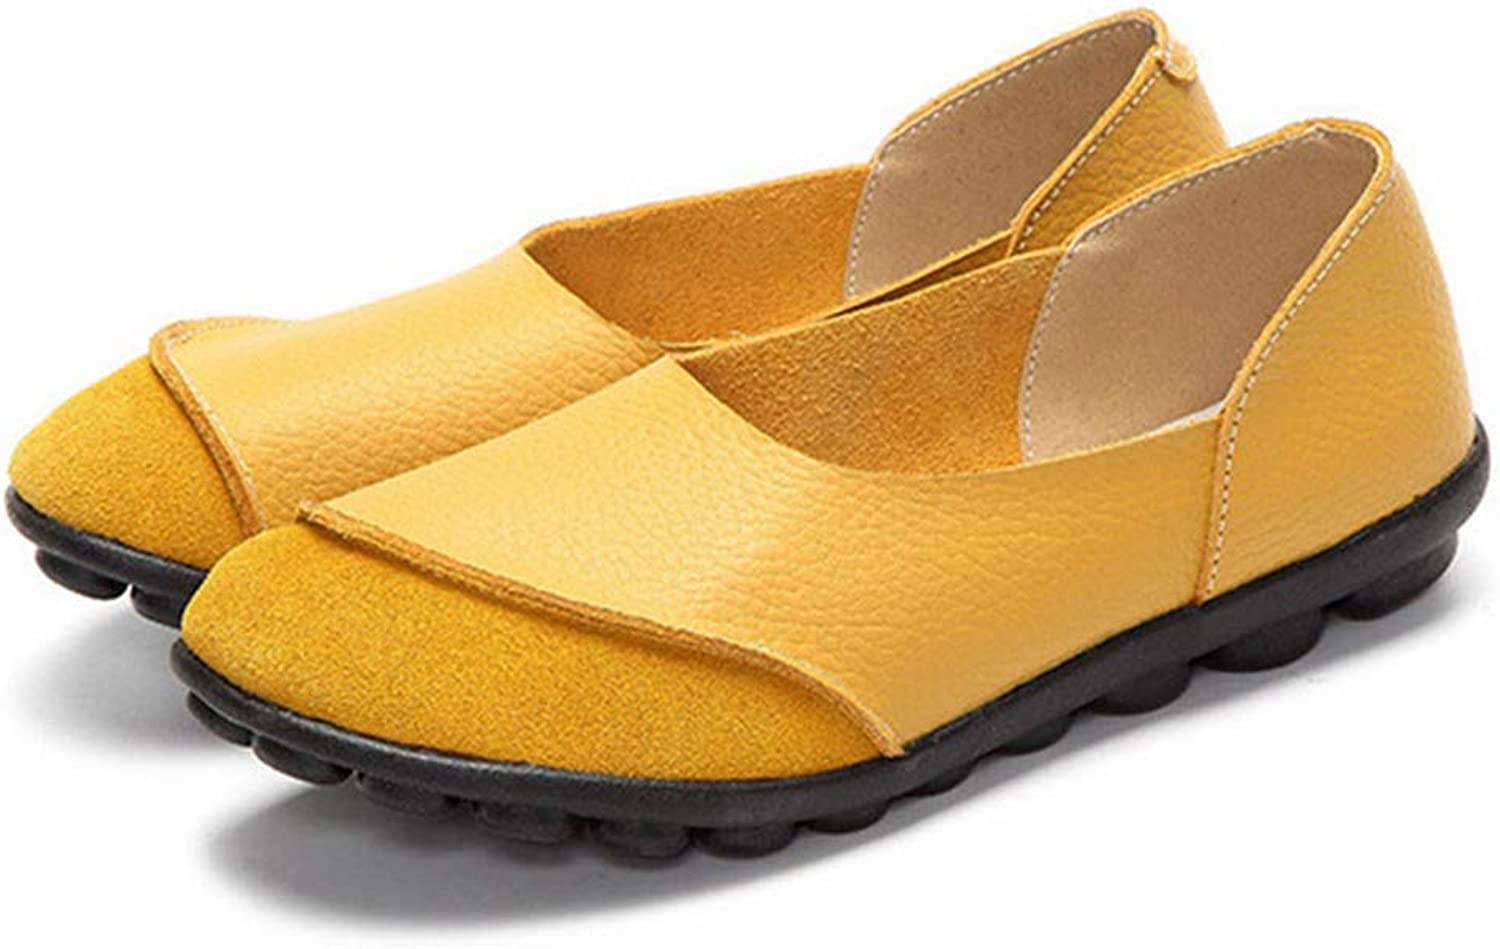 JOYBI Women Fashion Loafers Round Toe Soft Comfort Breathable Slip on Leather Casual Flat Driving shoes